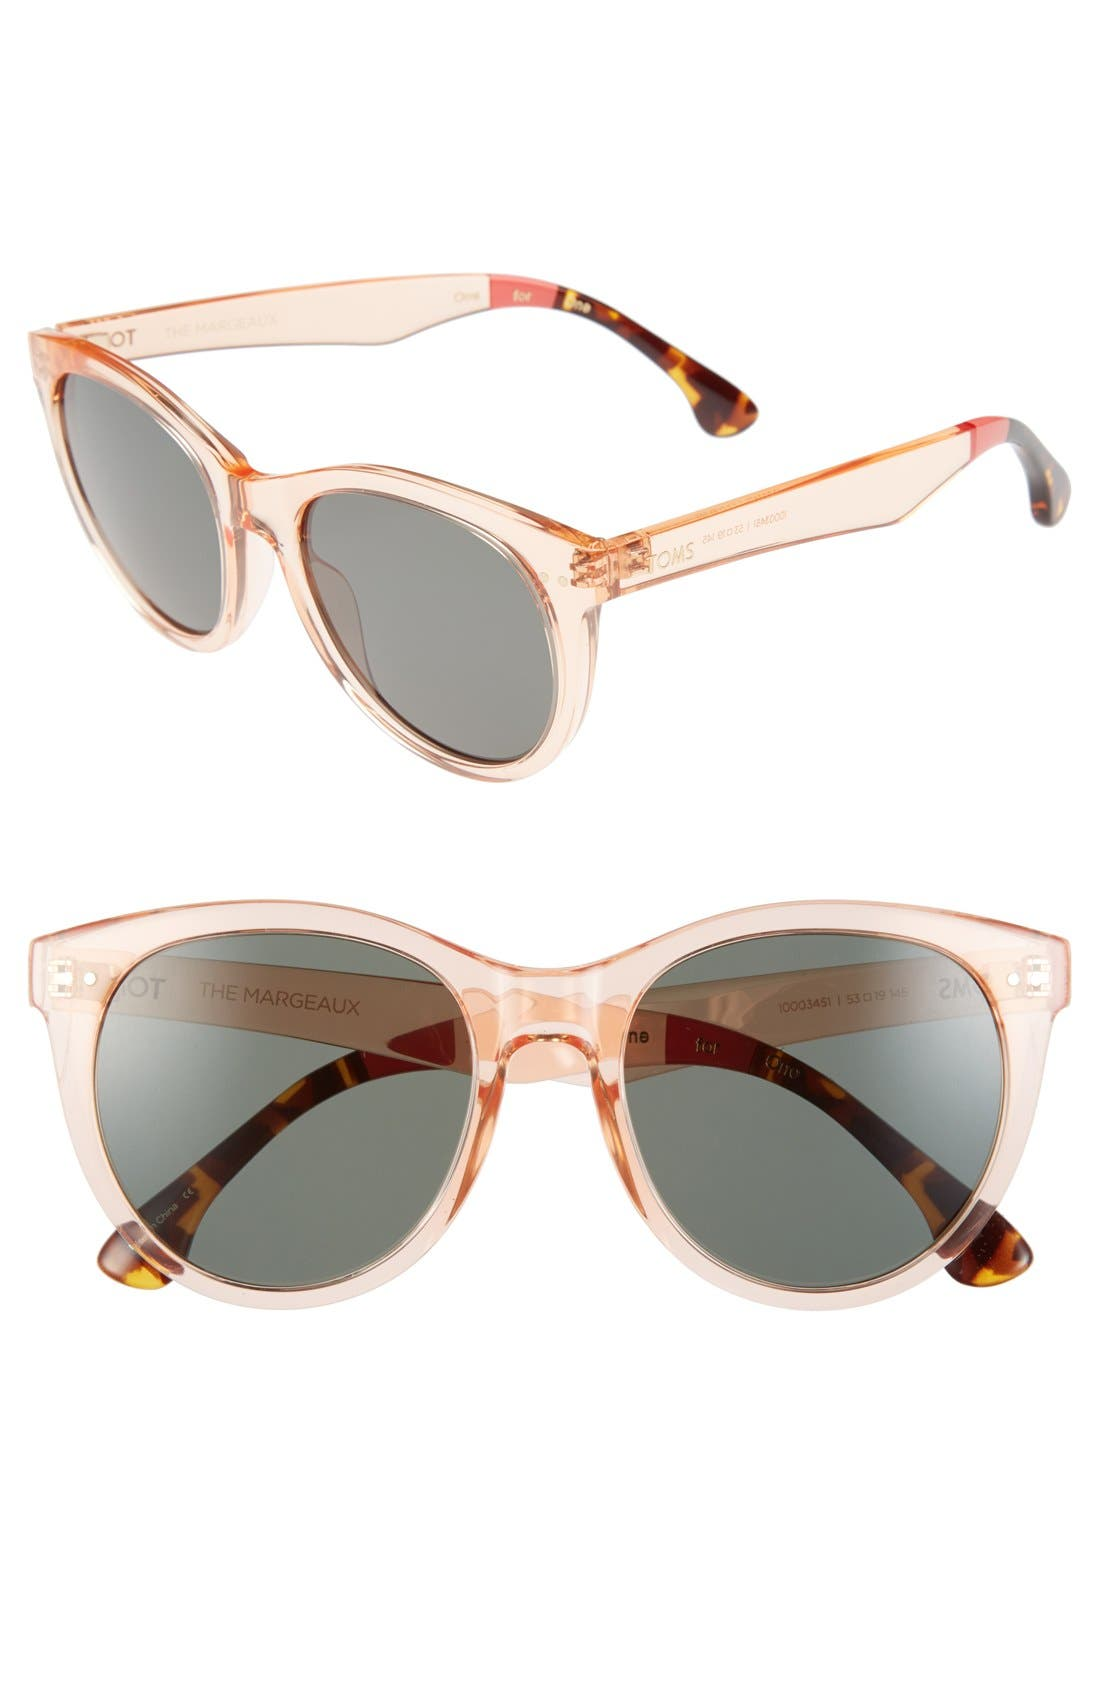 Alternate Image 1 Selected - TOMS 'Margeaux' 53mm Sunglasses